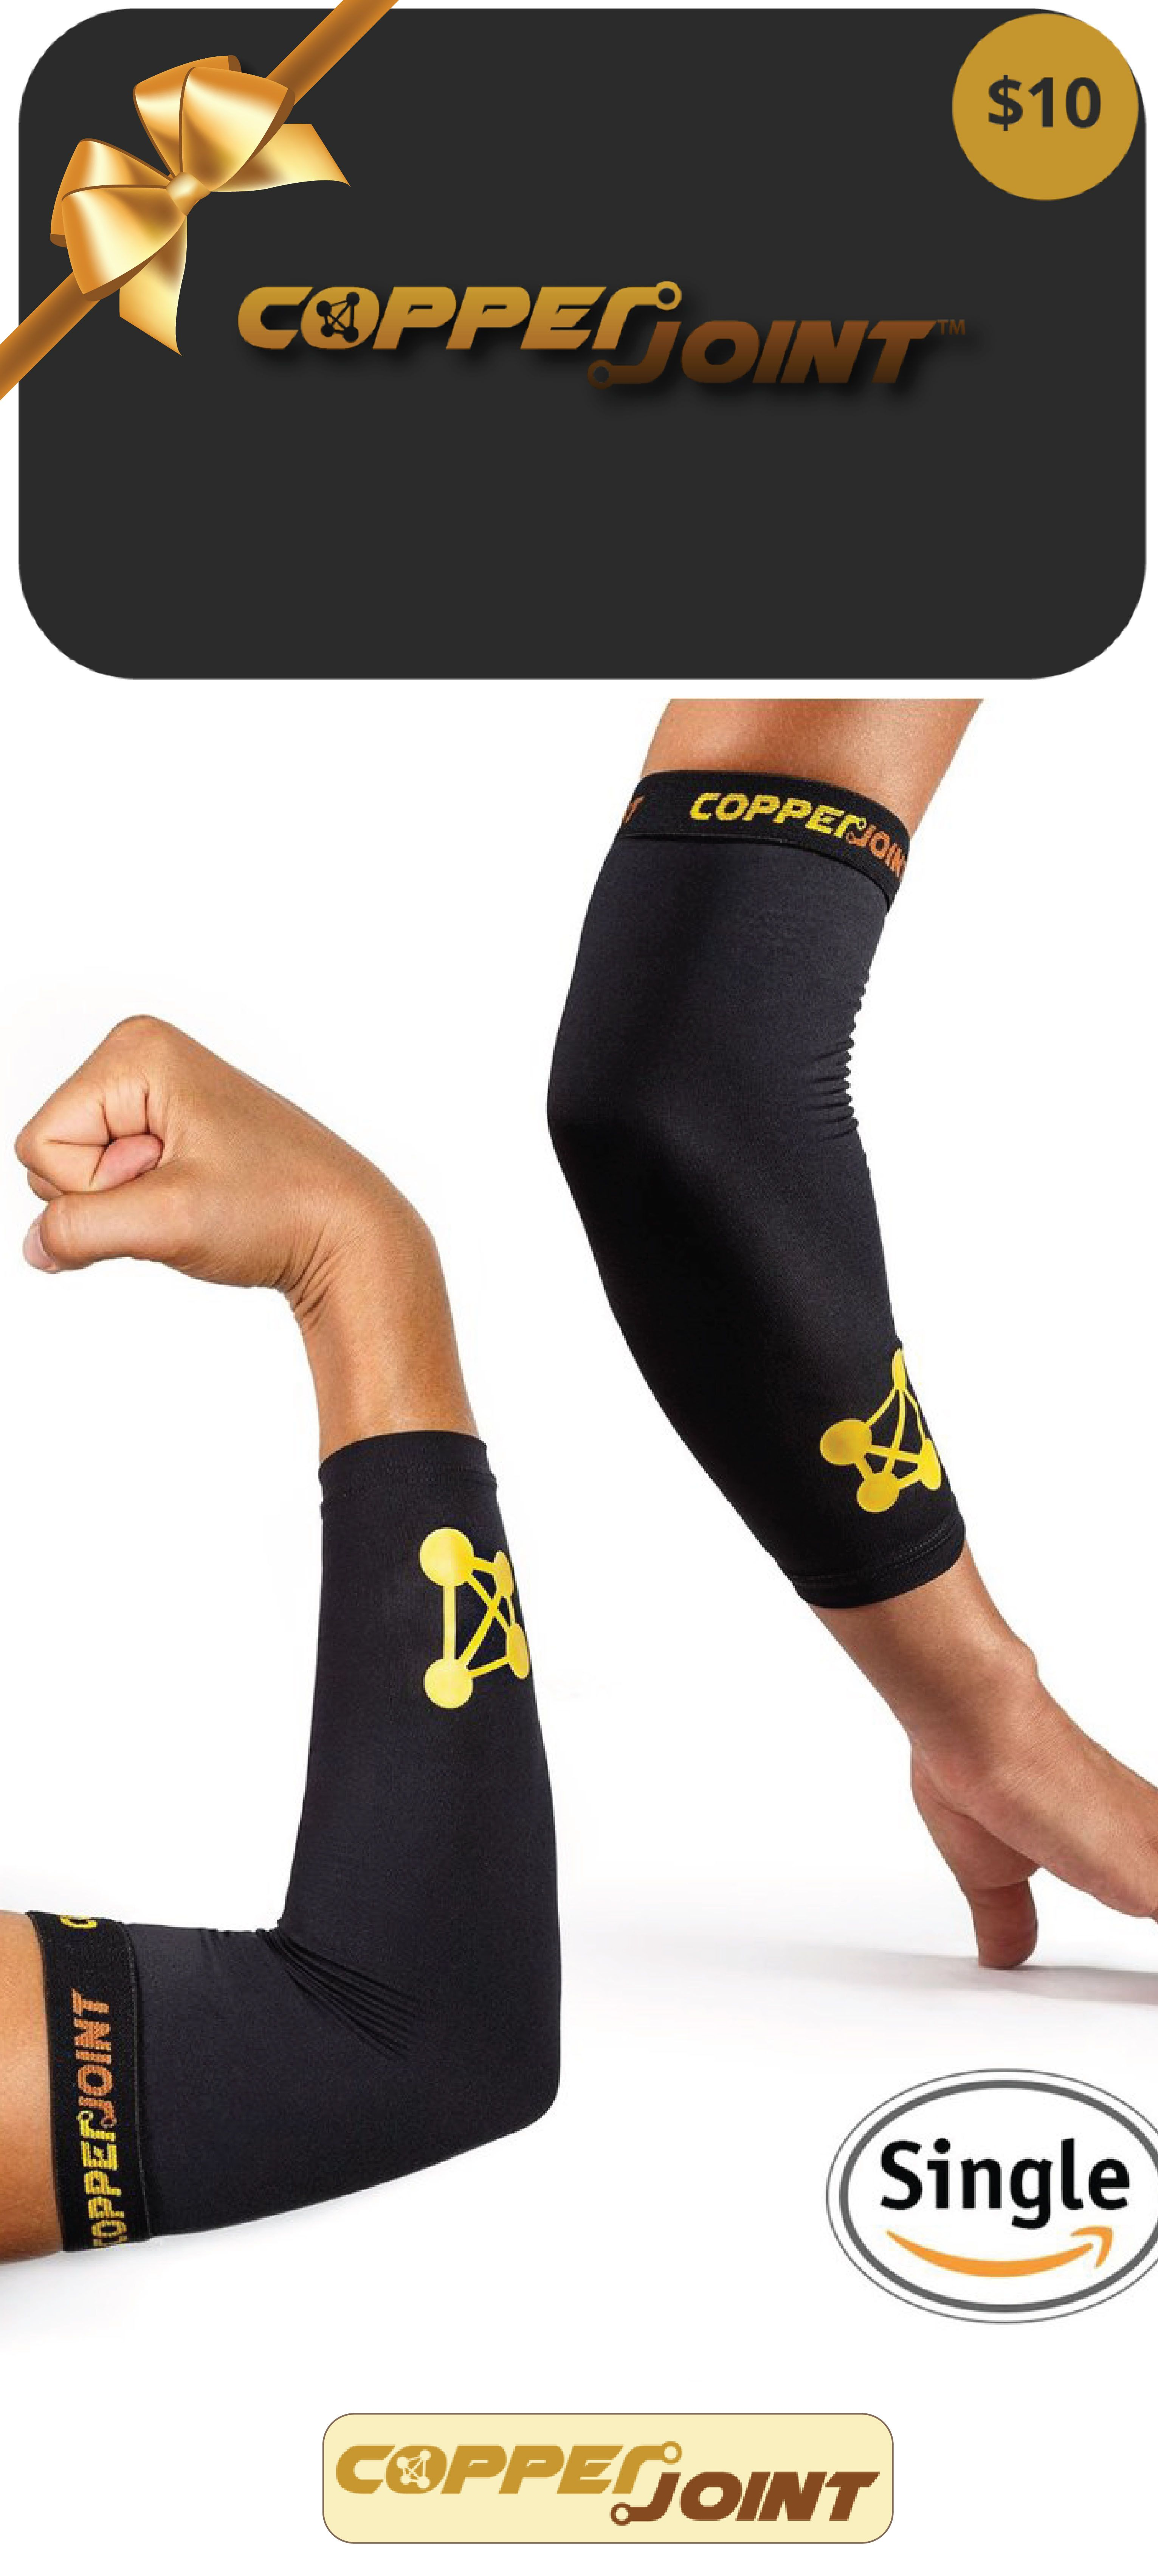 High-Performance Design Promotes Proper Blood Flow to Help Improve Circulation and Support Healing for All Lifestyles Single Sleeve Large CopperJoint Copper-Infused Compression Elbow Sleeve